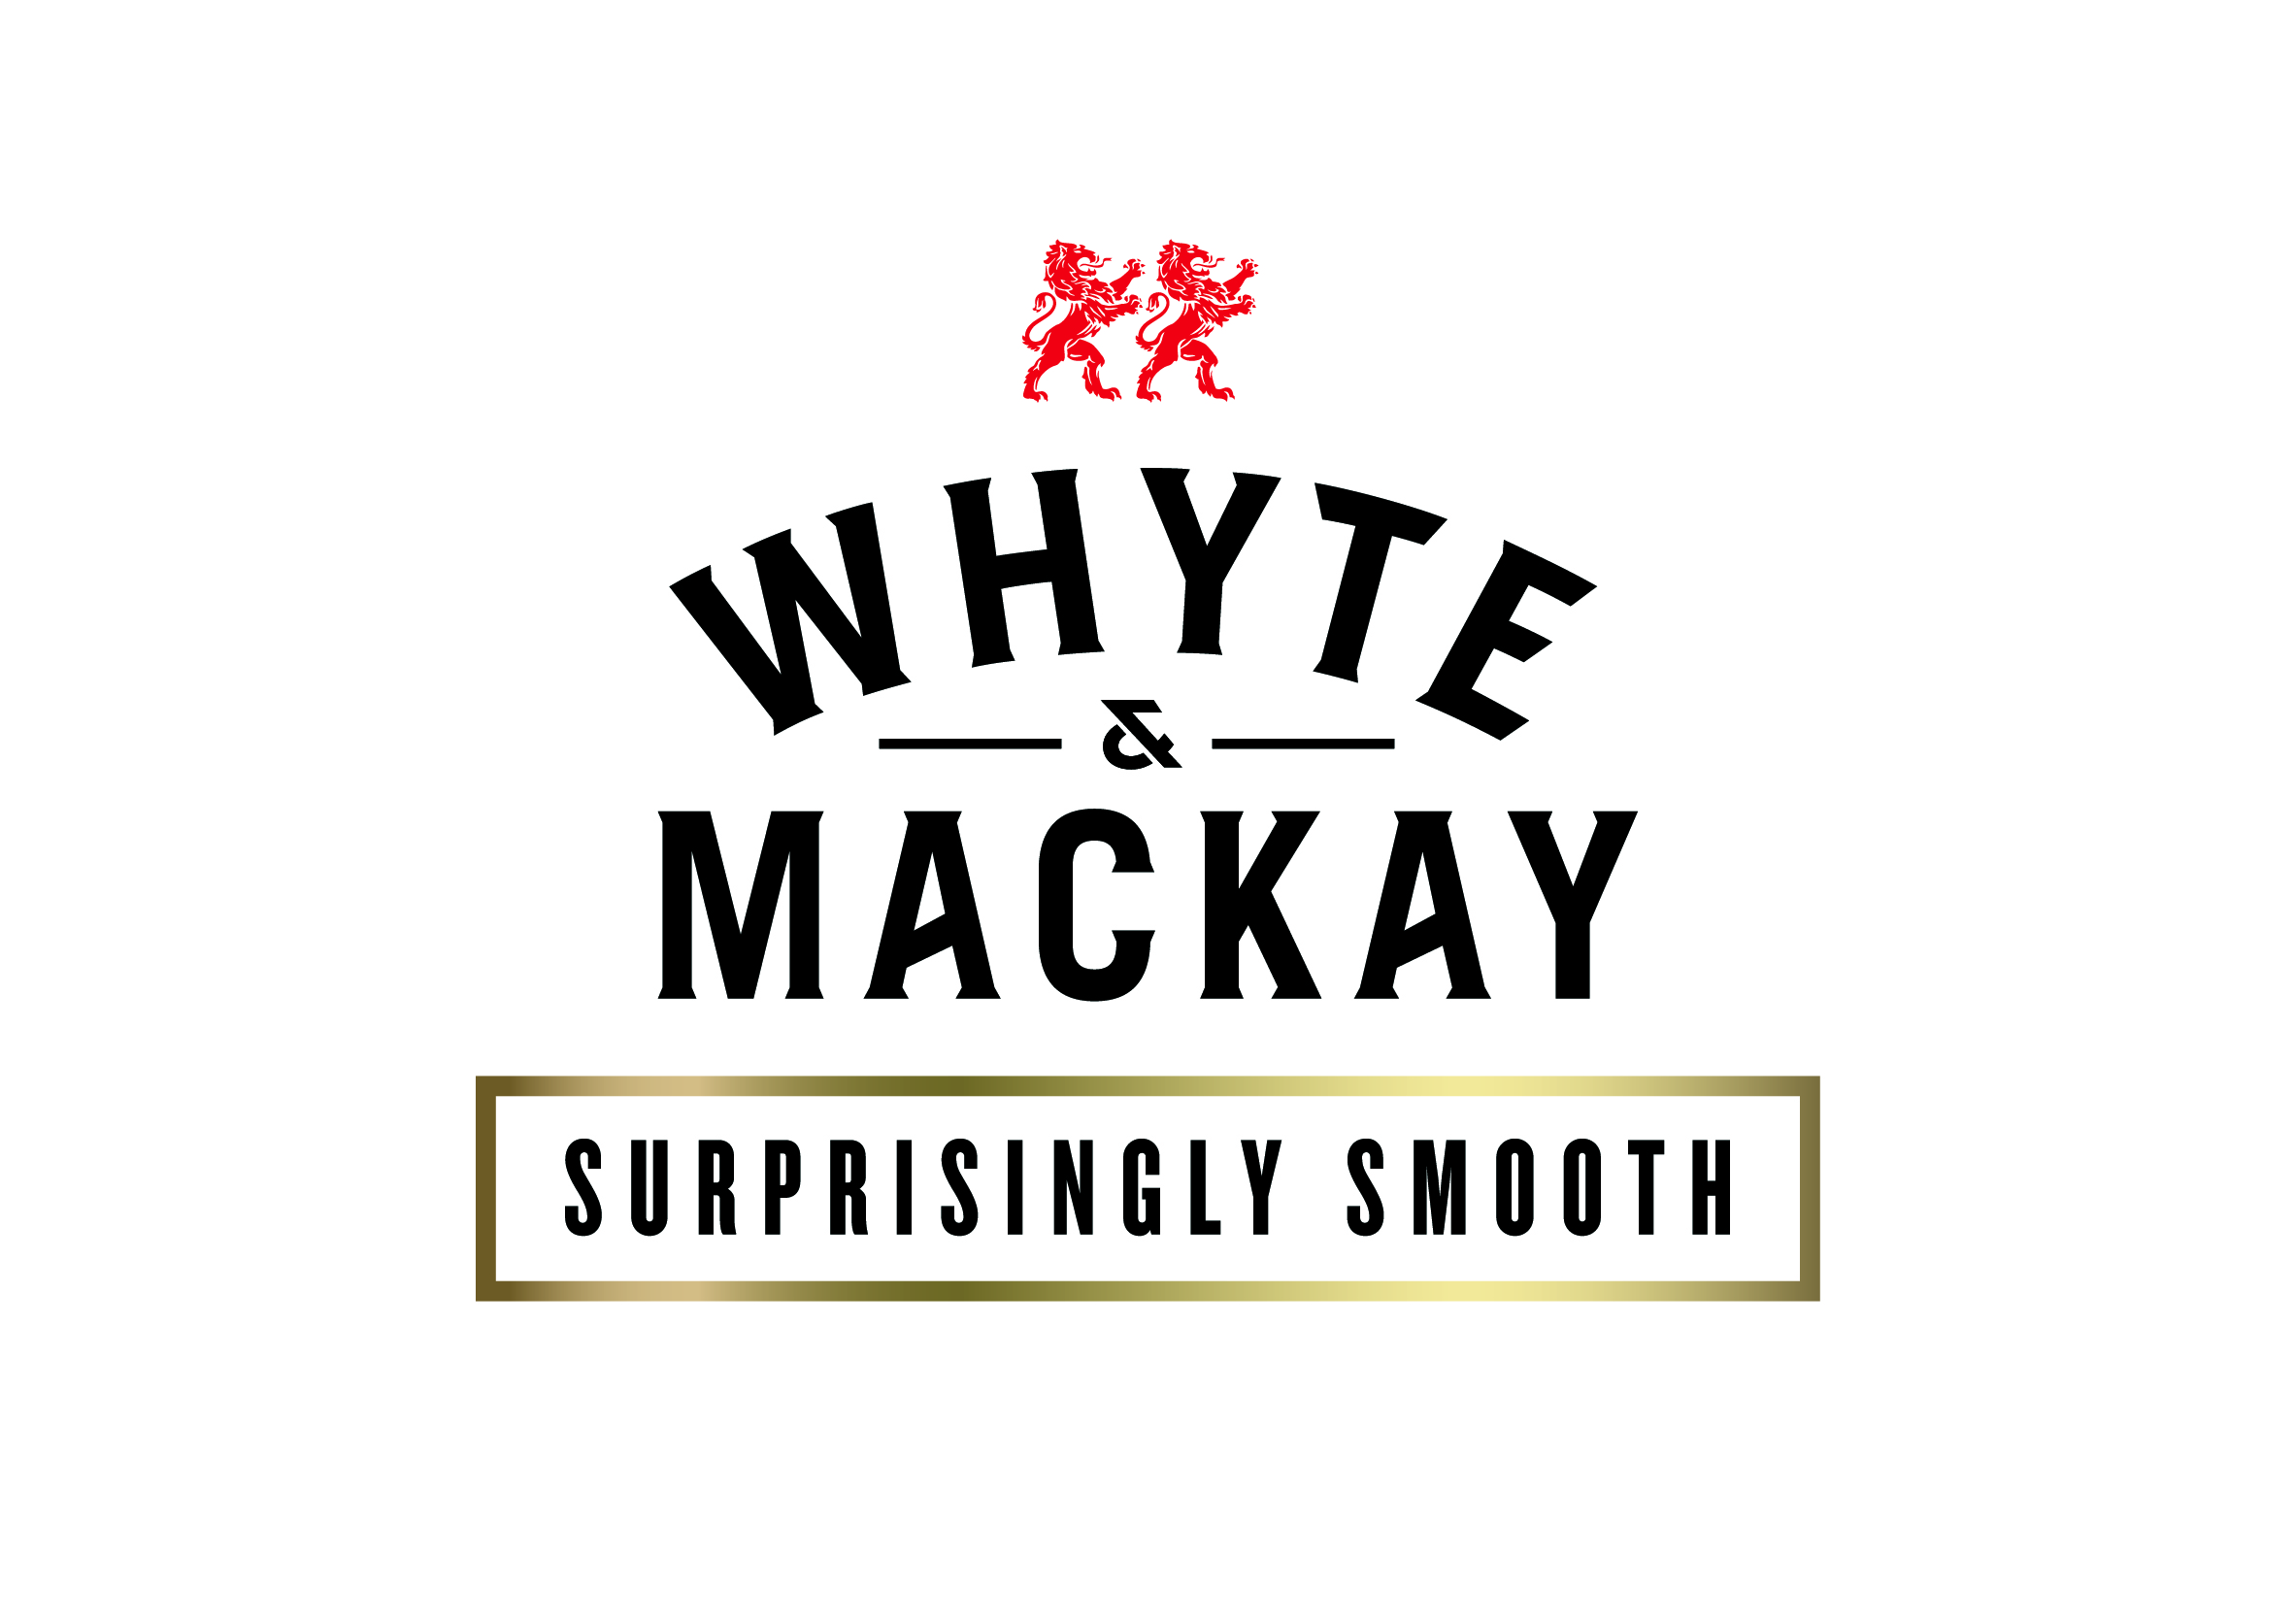 Sponsored by Whyte & Mackay FOD